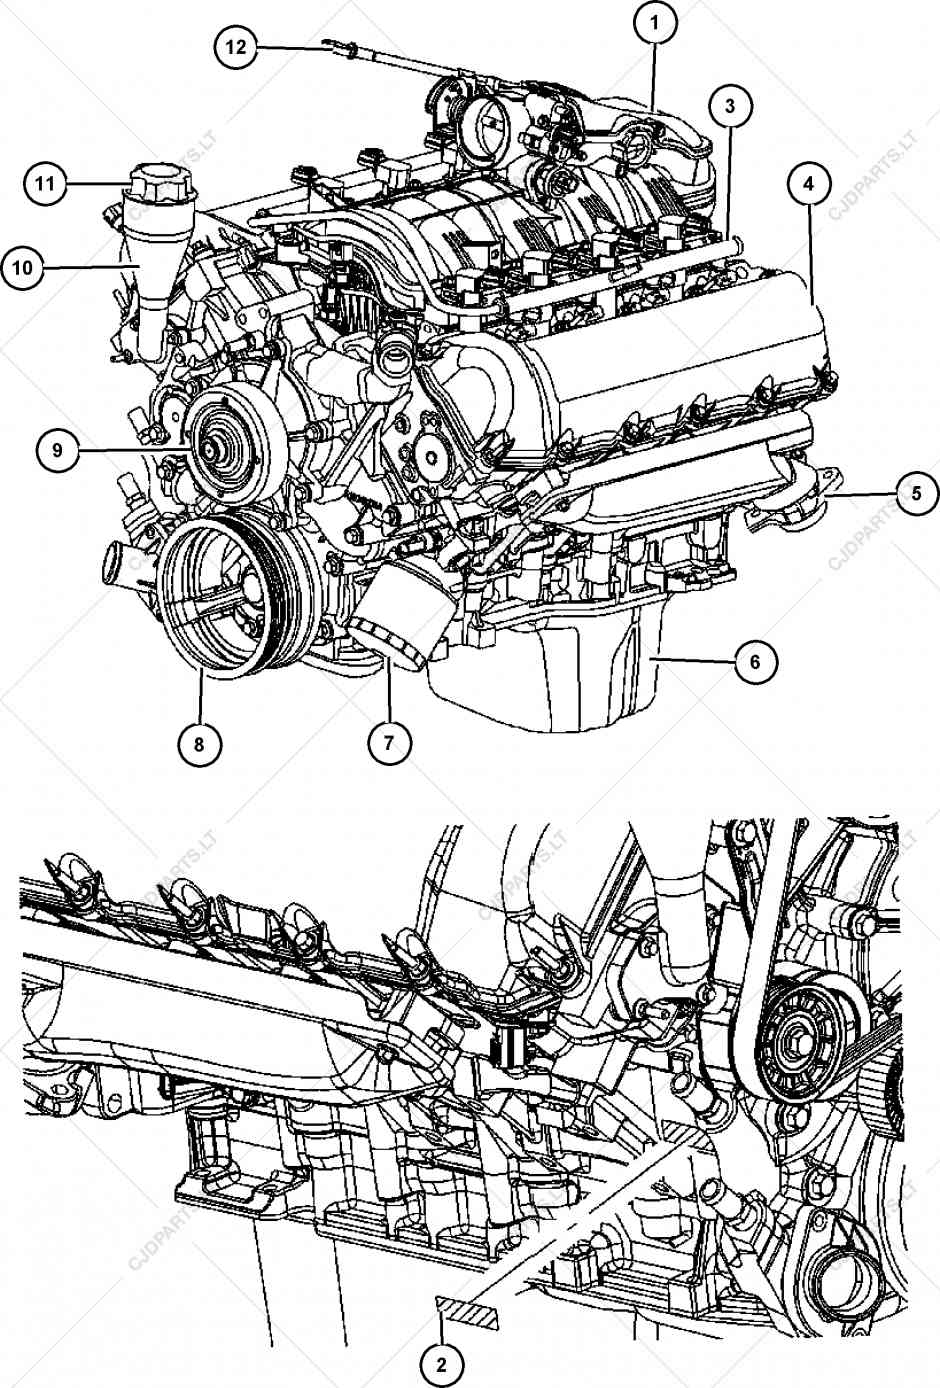 2007 jeep grand cherokee engine diagram - wiring diagram complete -  complete.lionsclubviterbo.it  lions club viterbo